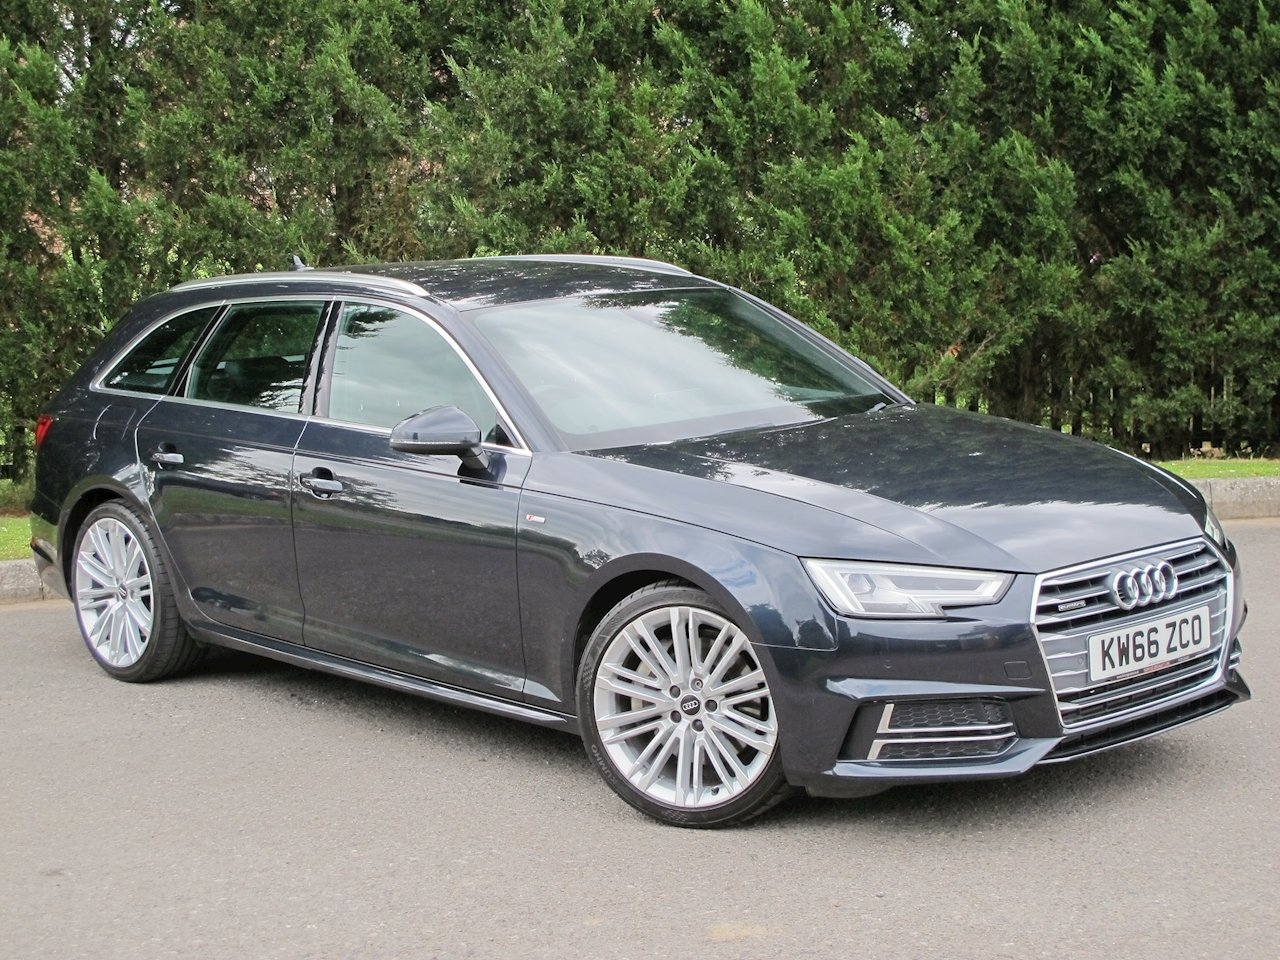 2017 Audi A4 Avant 3.0TDI 272PS quattro S Line S-Tronic For Sale (picture 1 of 6)